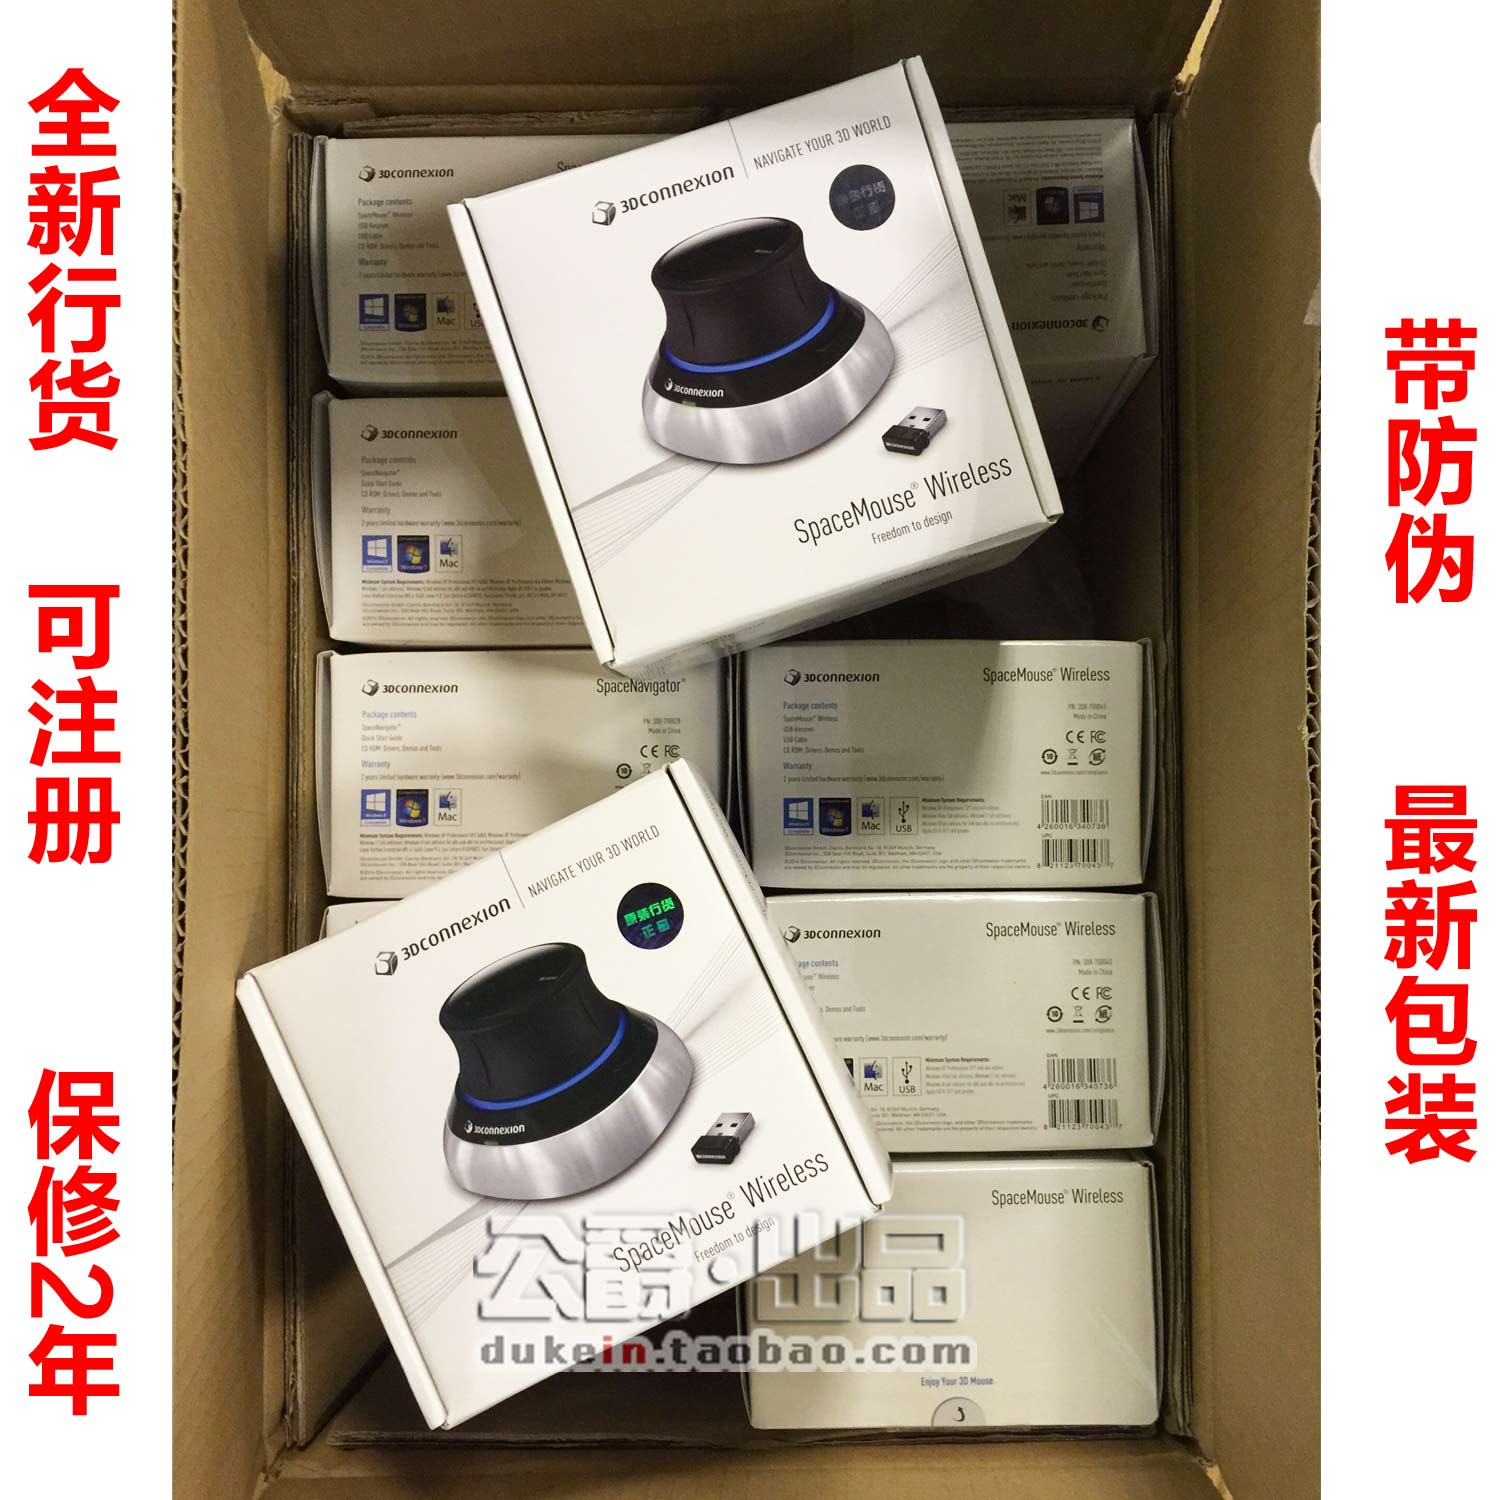 3Dconnexion SpaceMouse Wireless 3D鼠标控制器 行货